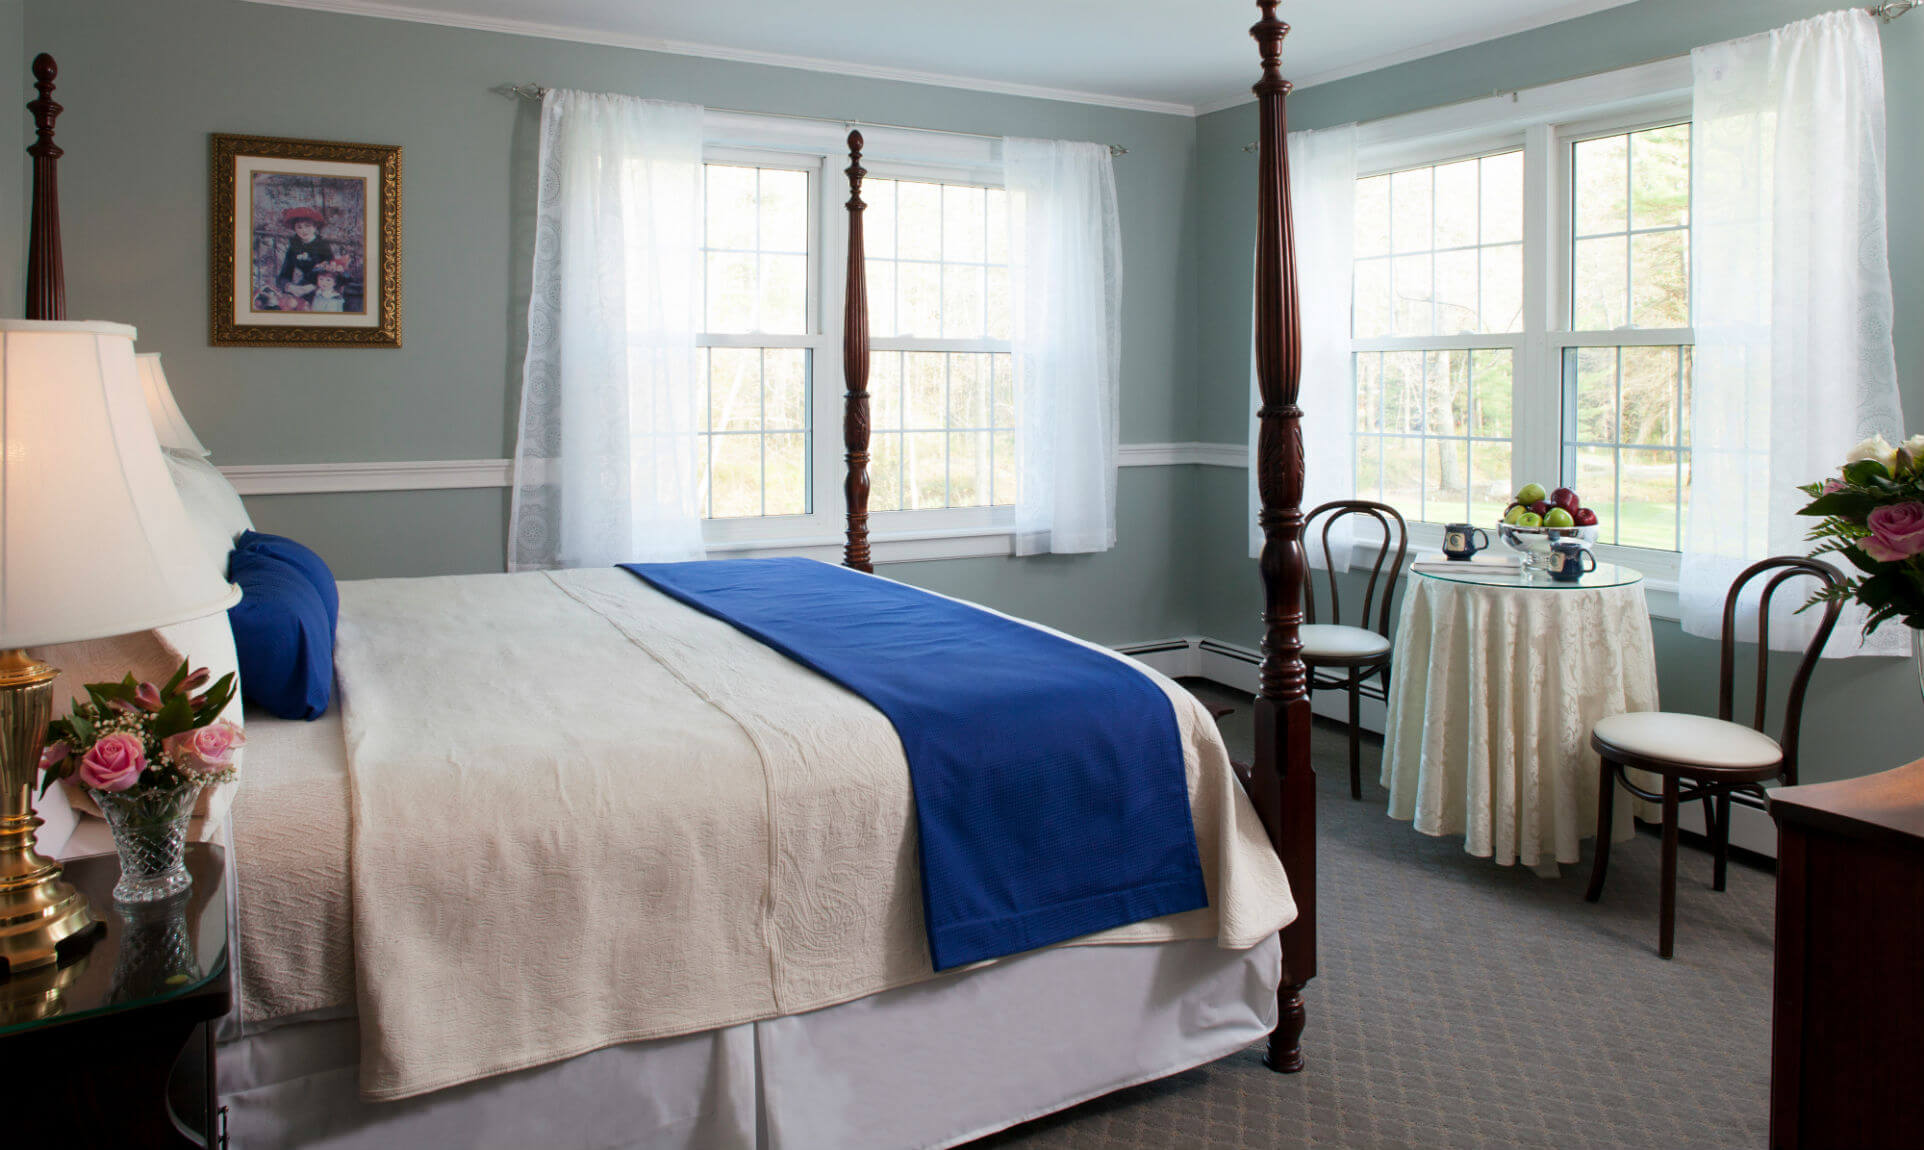 Soft bed with white comforter near sitting area with antique chairs